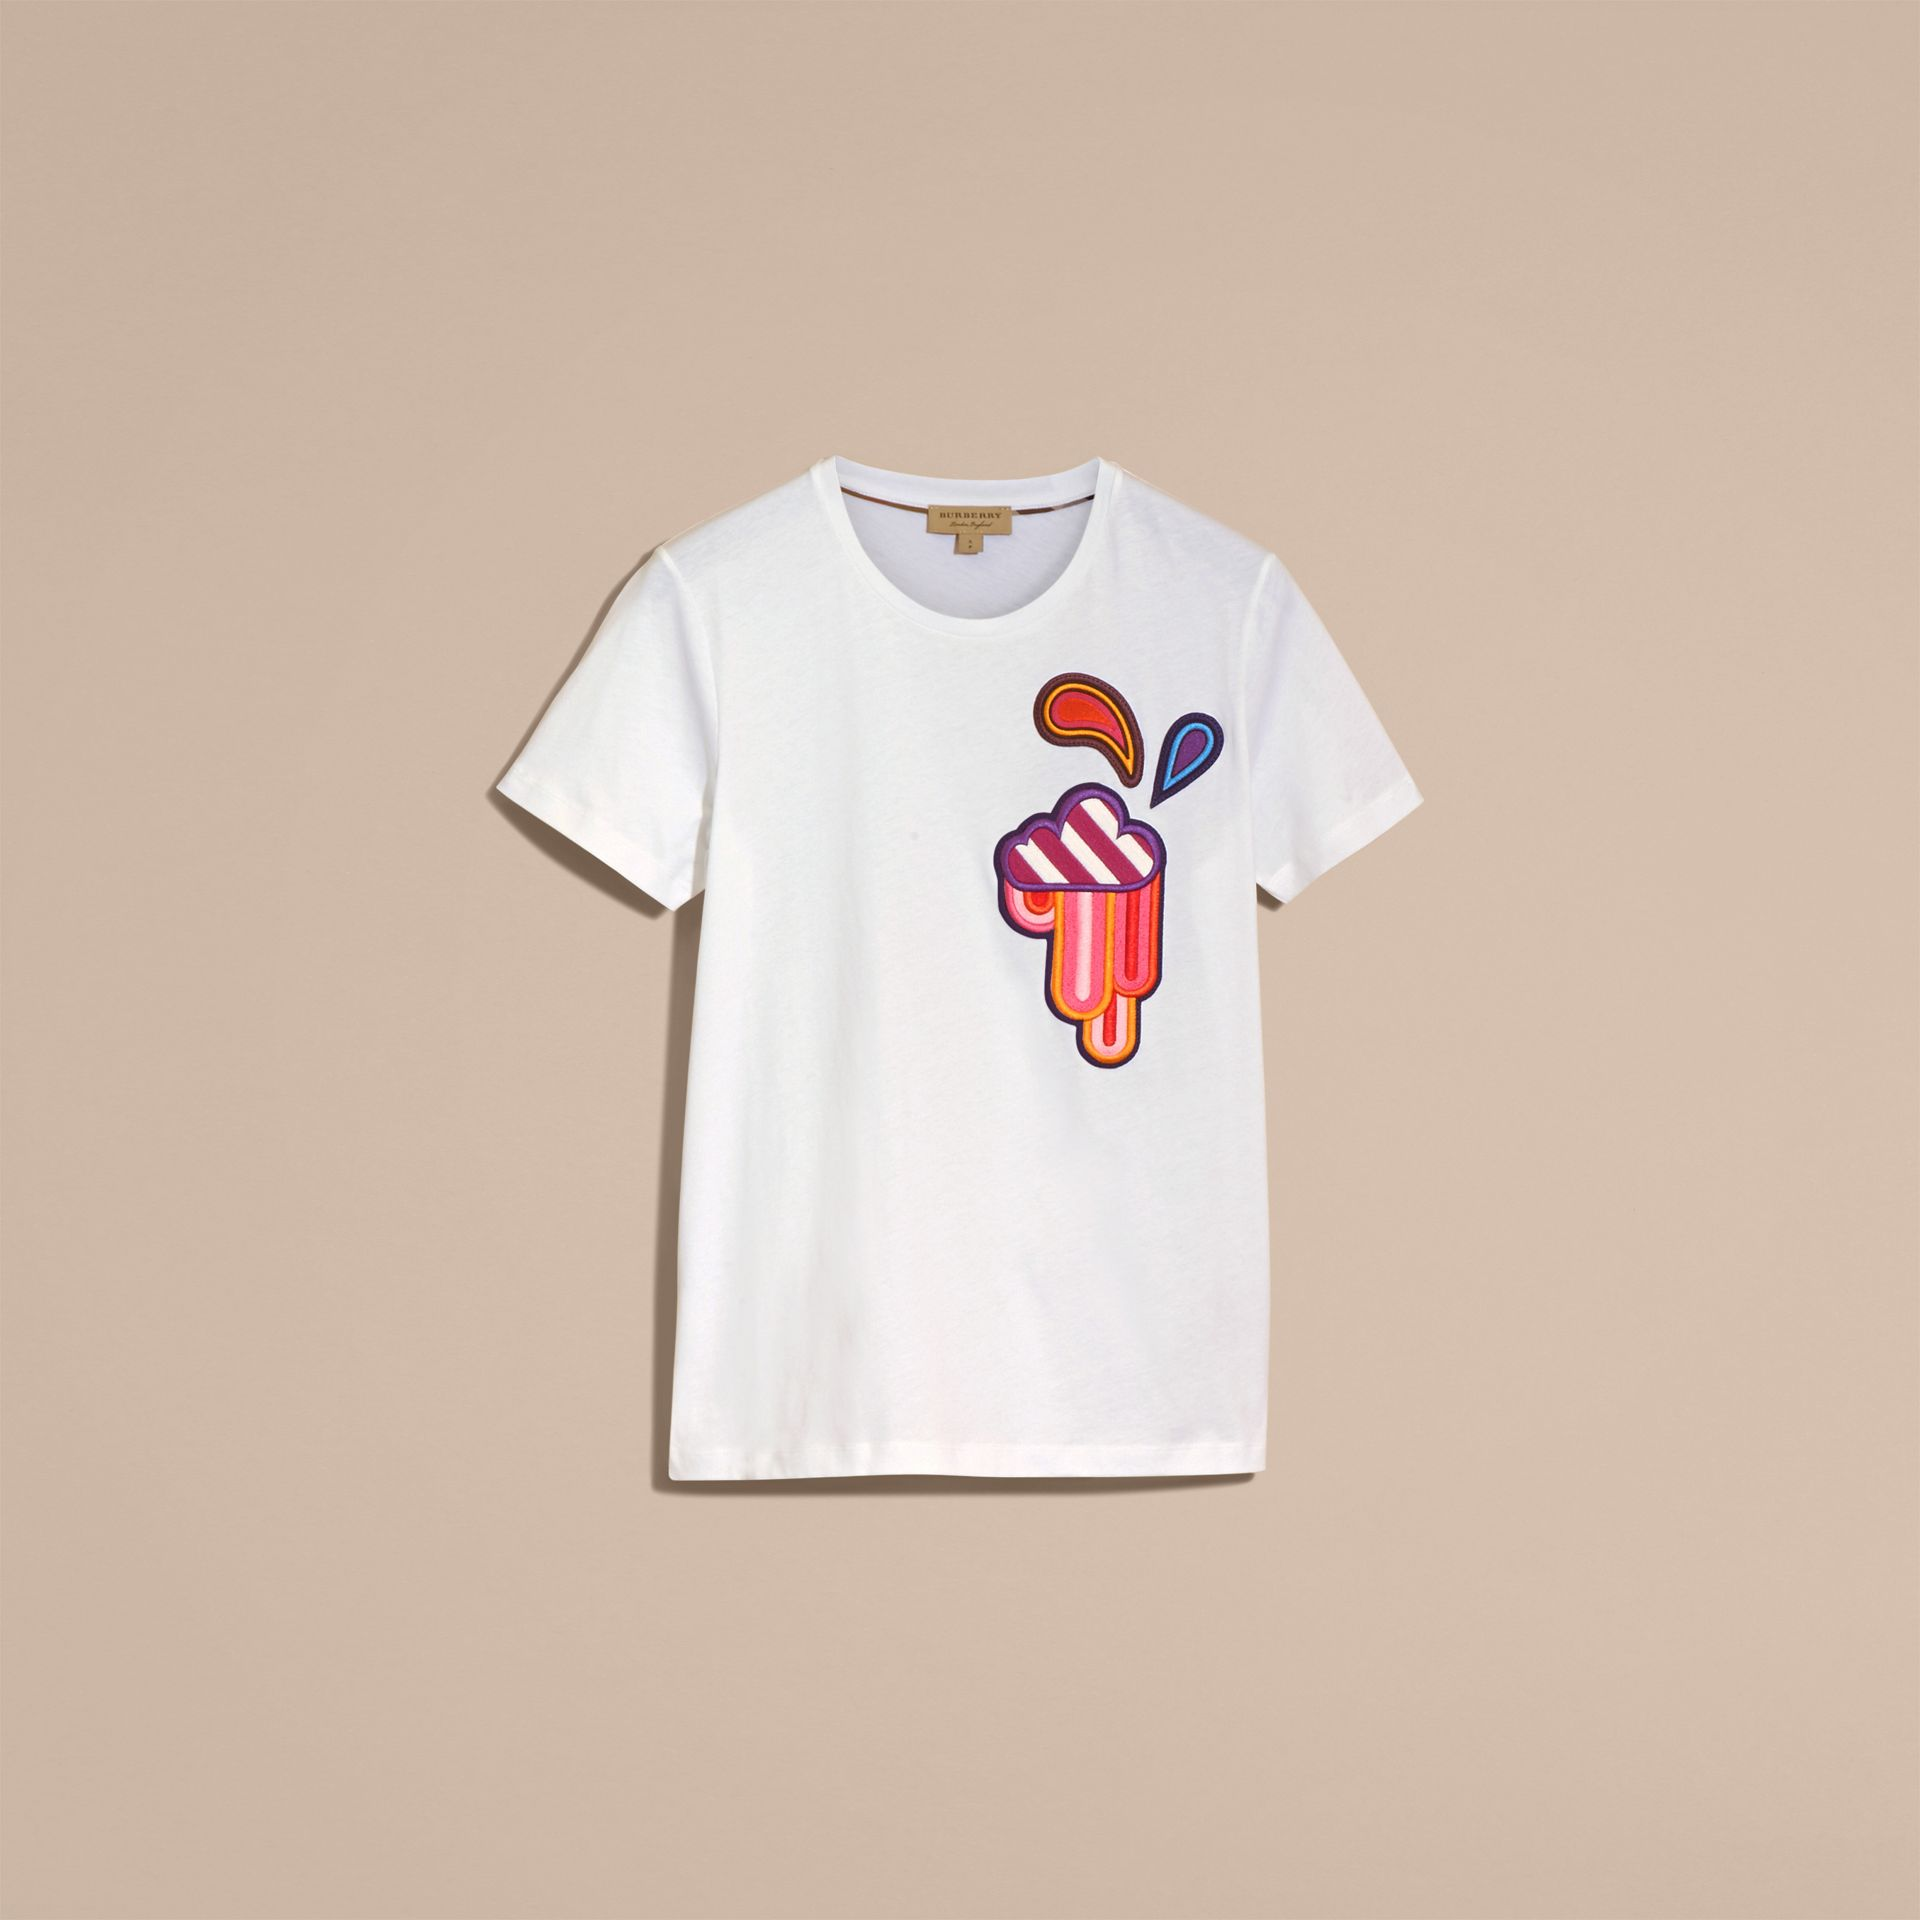 Appliquéd Weather Motif Cotton T-shirt White - gallery image 4